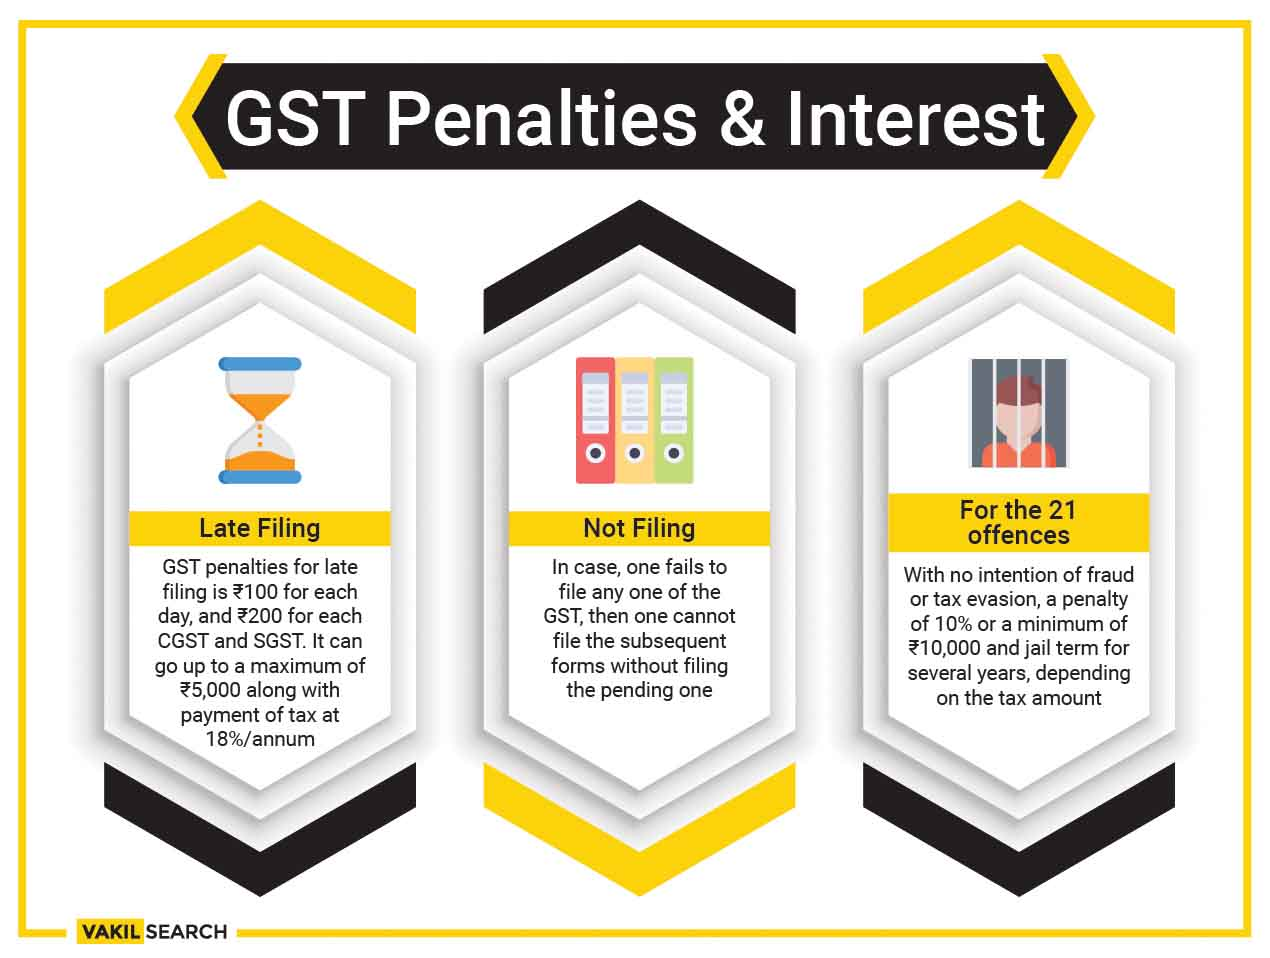 gst penalties and interest